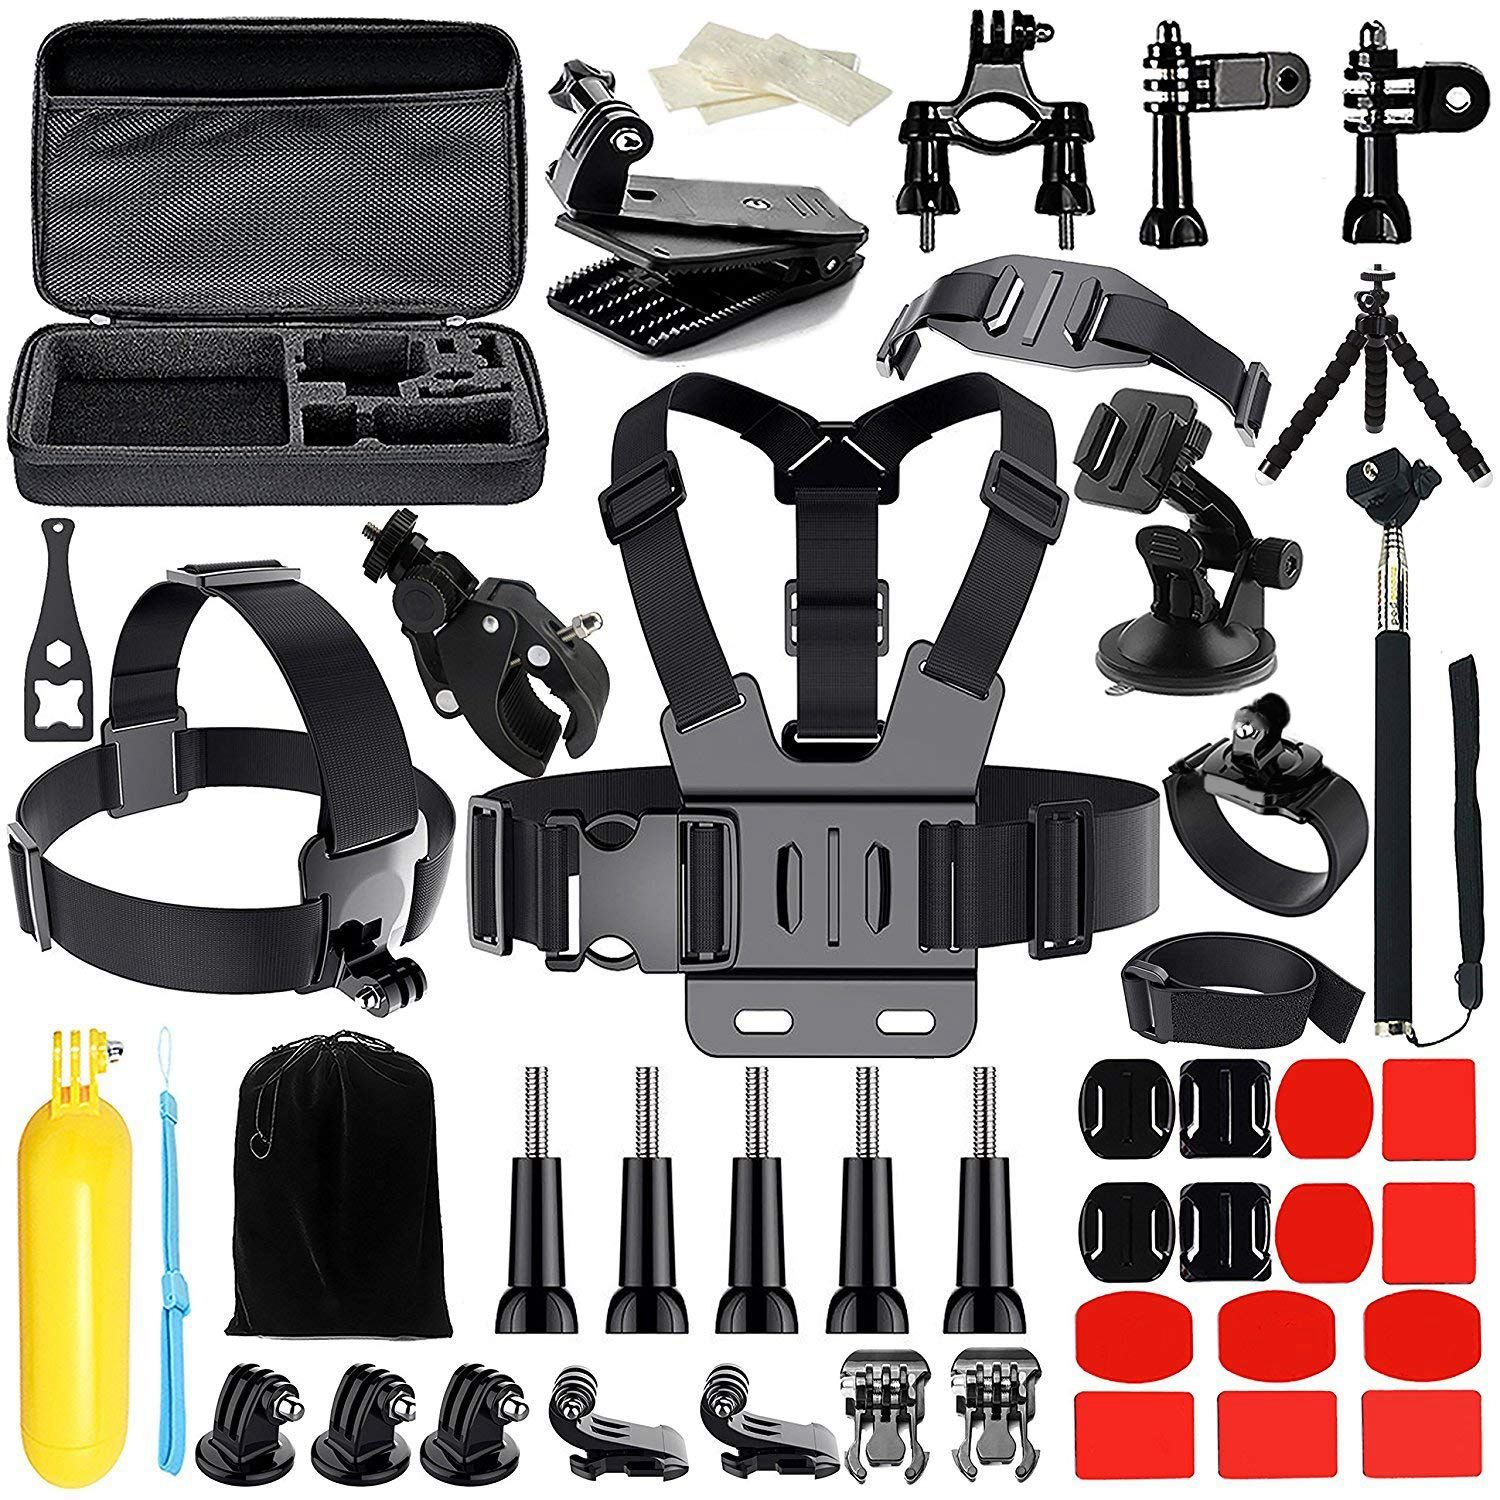 Camera Accessories for GoPro Hero 2019Session/6 5 Hero 4 3+ SJ4000/5000/6000/AKASO/APEMAN/DBPOWER/And Sony Sports DV and More